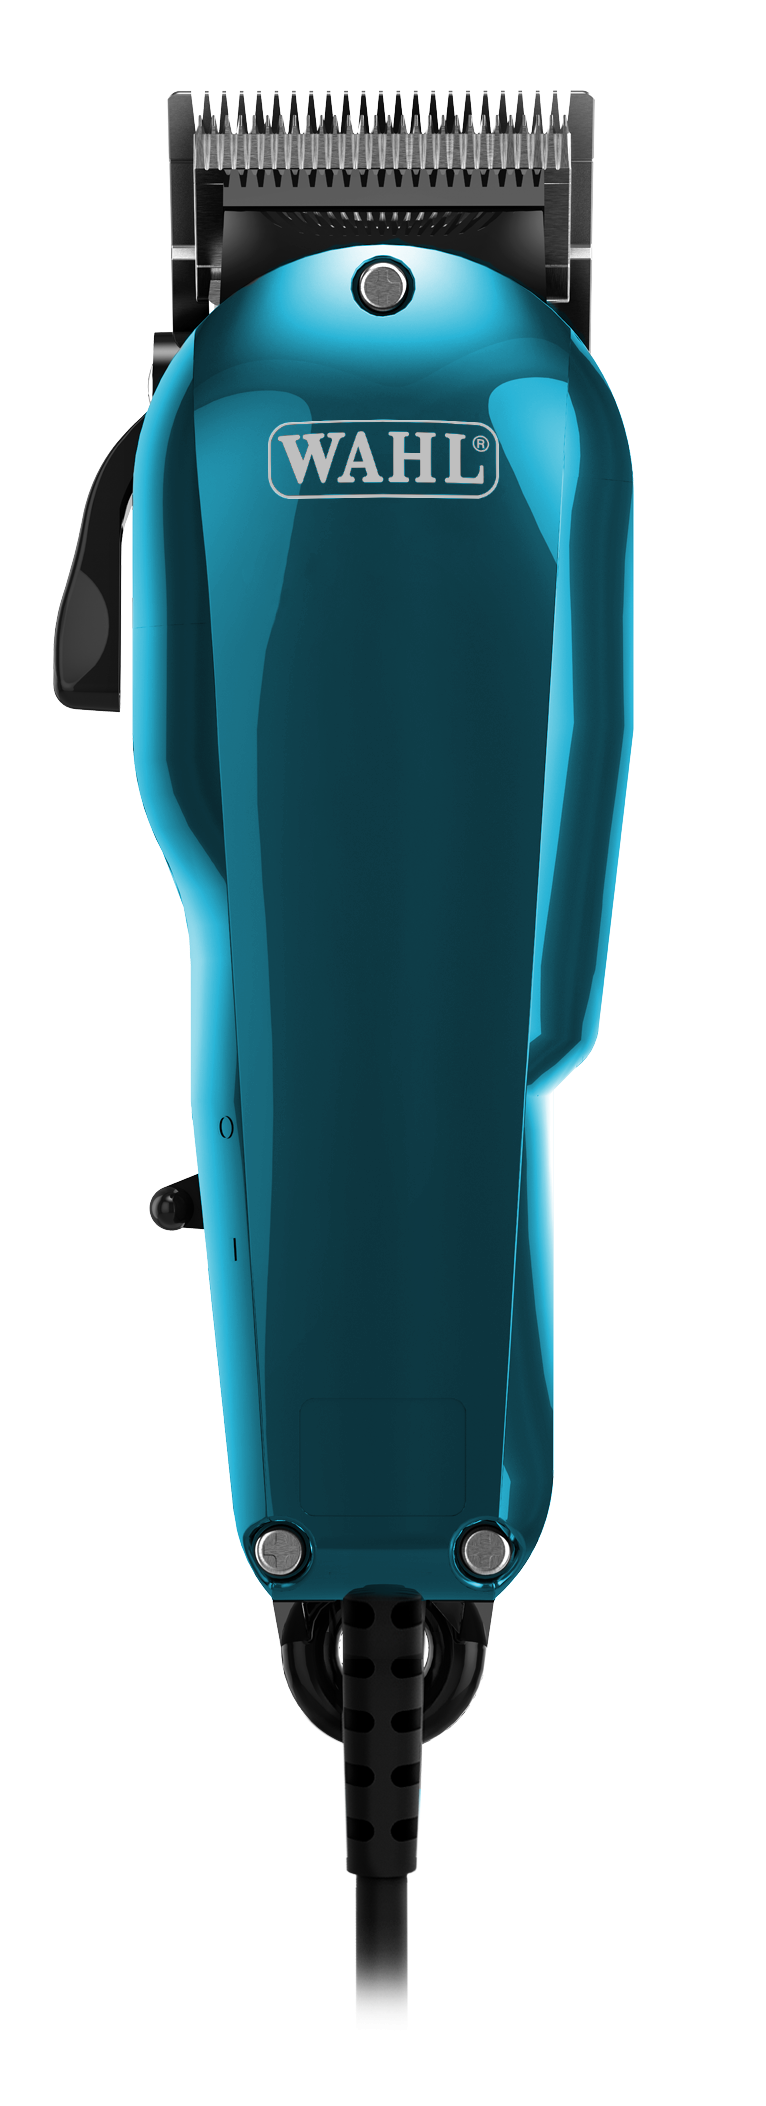 Wahl Taper 2000 Teal Professional Corded Hair Clippers - WA8472-3112 (Teal)